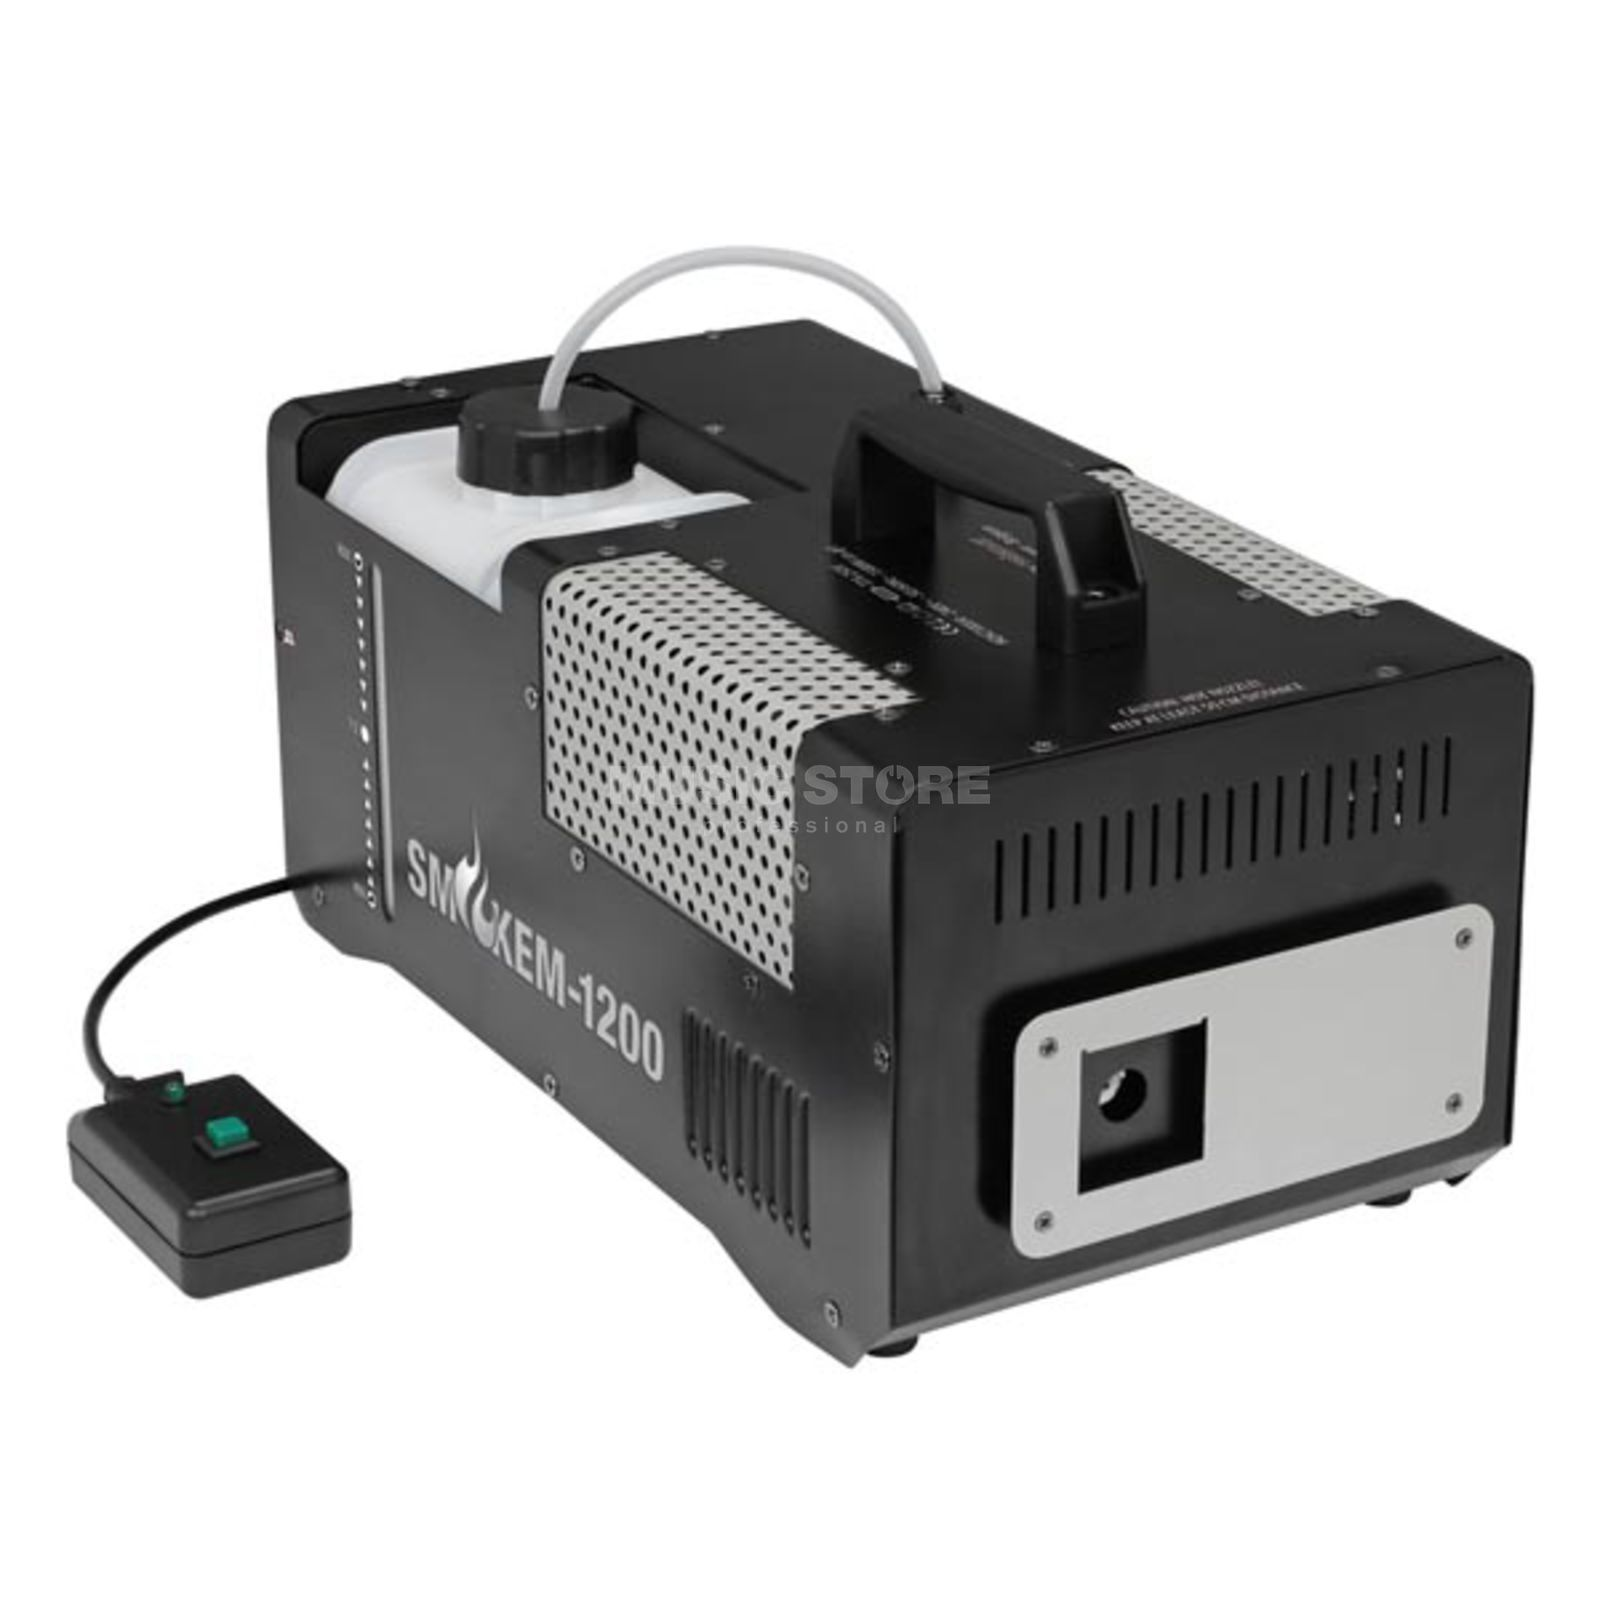 HQ Power SM 10004 Fog Machine Product Image